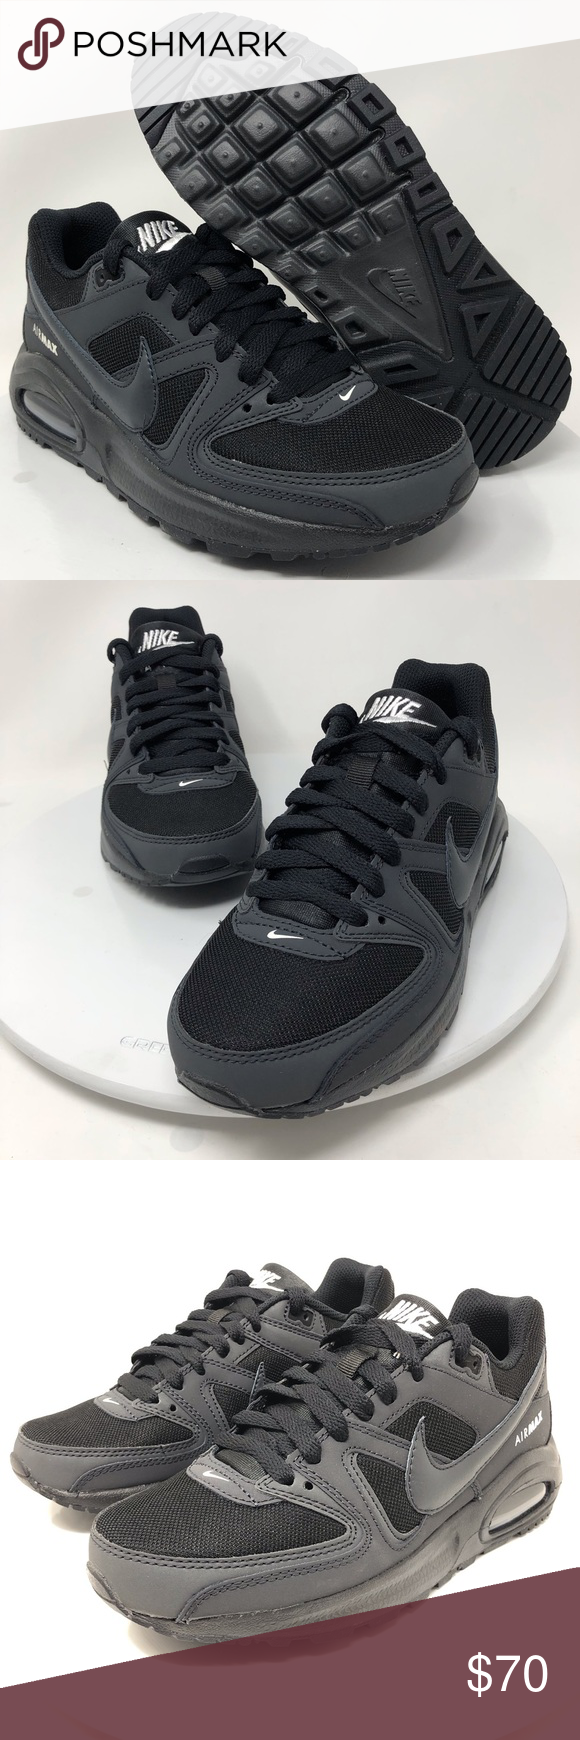 size 40 11679 678a2 Nike Air Max (GS) Command Flex Sz 4.5Y 844346-002 Nike Kids Air Max (GS) Command  Flex Running Shoes Sz 4.5Y 844346-002. Condition is New with box but has no  ...